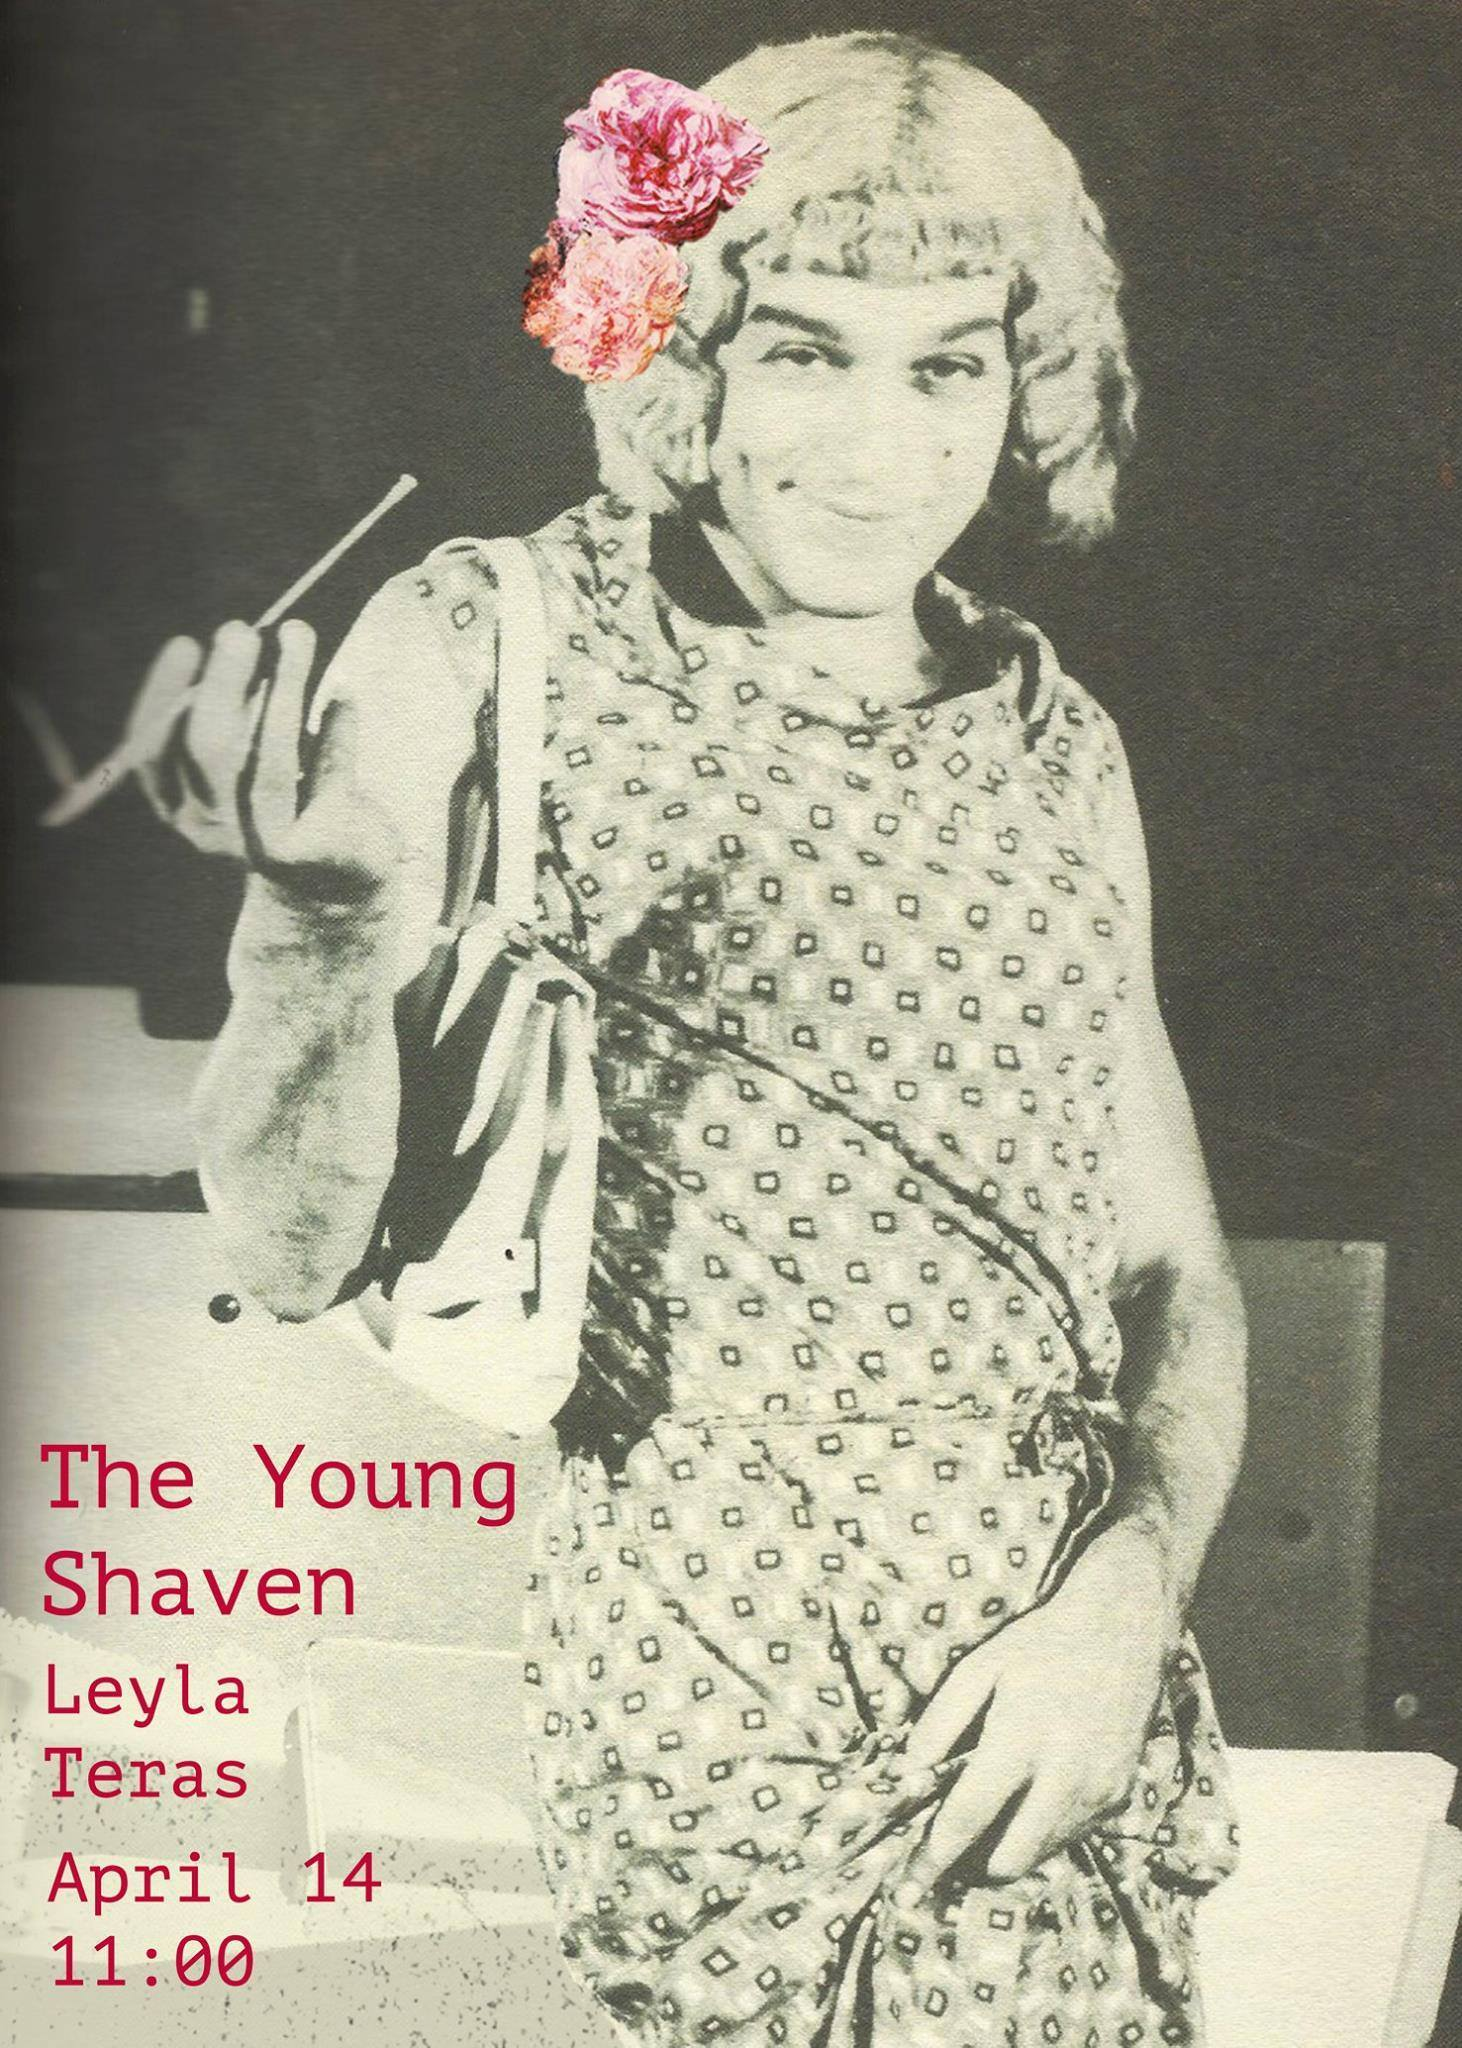 The Young Shaven @ Leyla Teras Poster